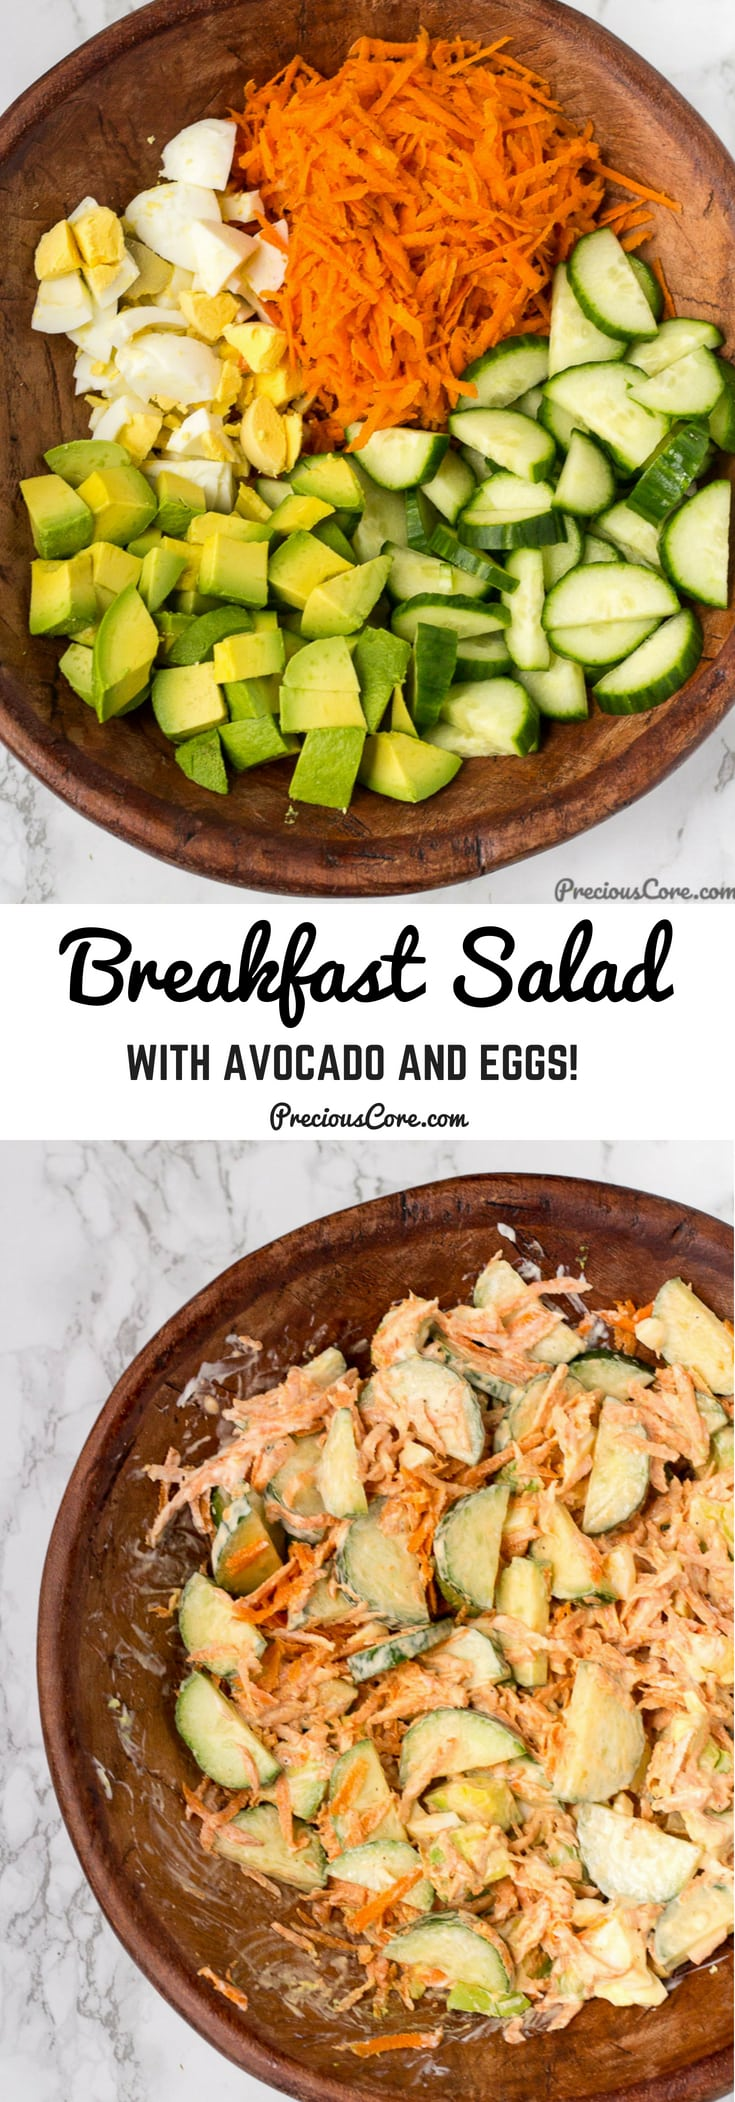 Breakfast salad loaded with avocado, eggs and crunchy veggies. It is fresh, creamy and delicious. The right way to start your day! #Breakfast #Salads #Veggies #Avocado